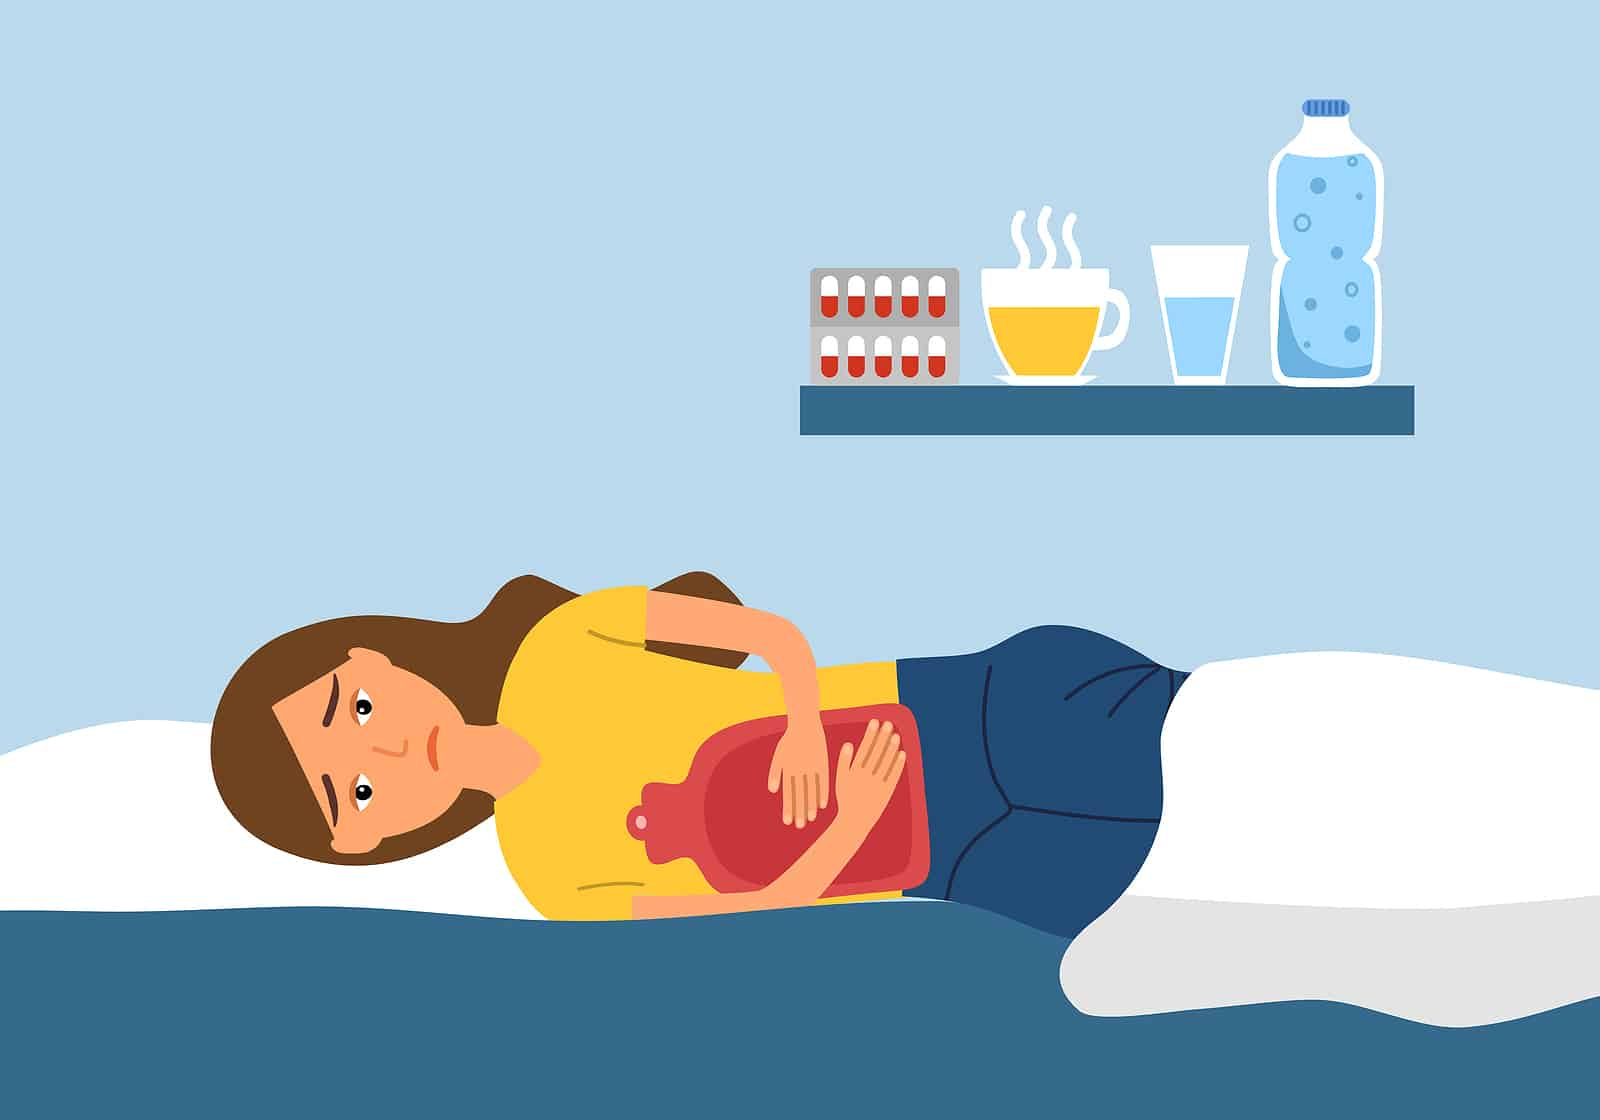 Seed cycling for hormones: help with menstrual cramps. Illustration of woman with ice pad on bed.